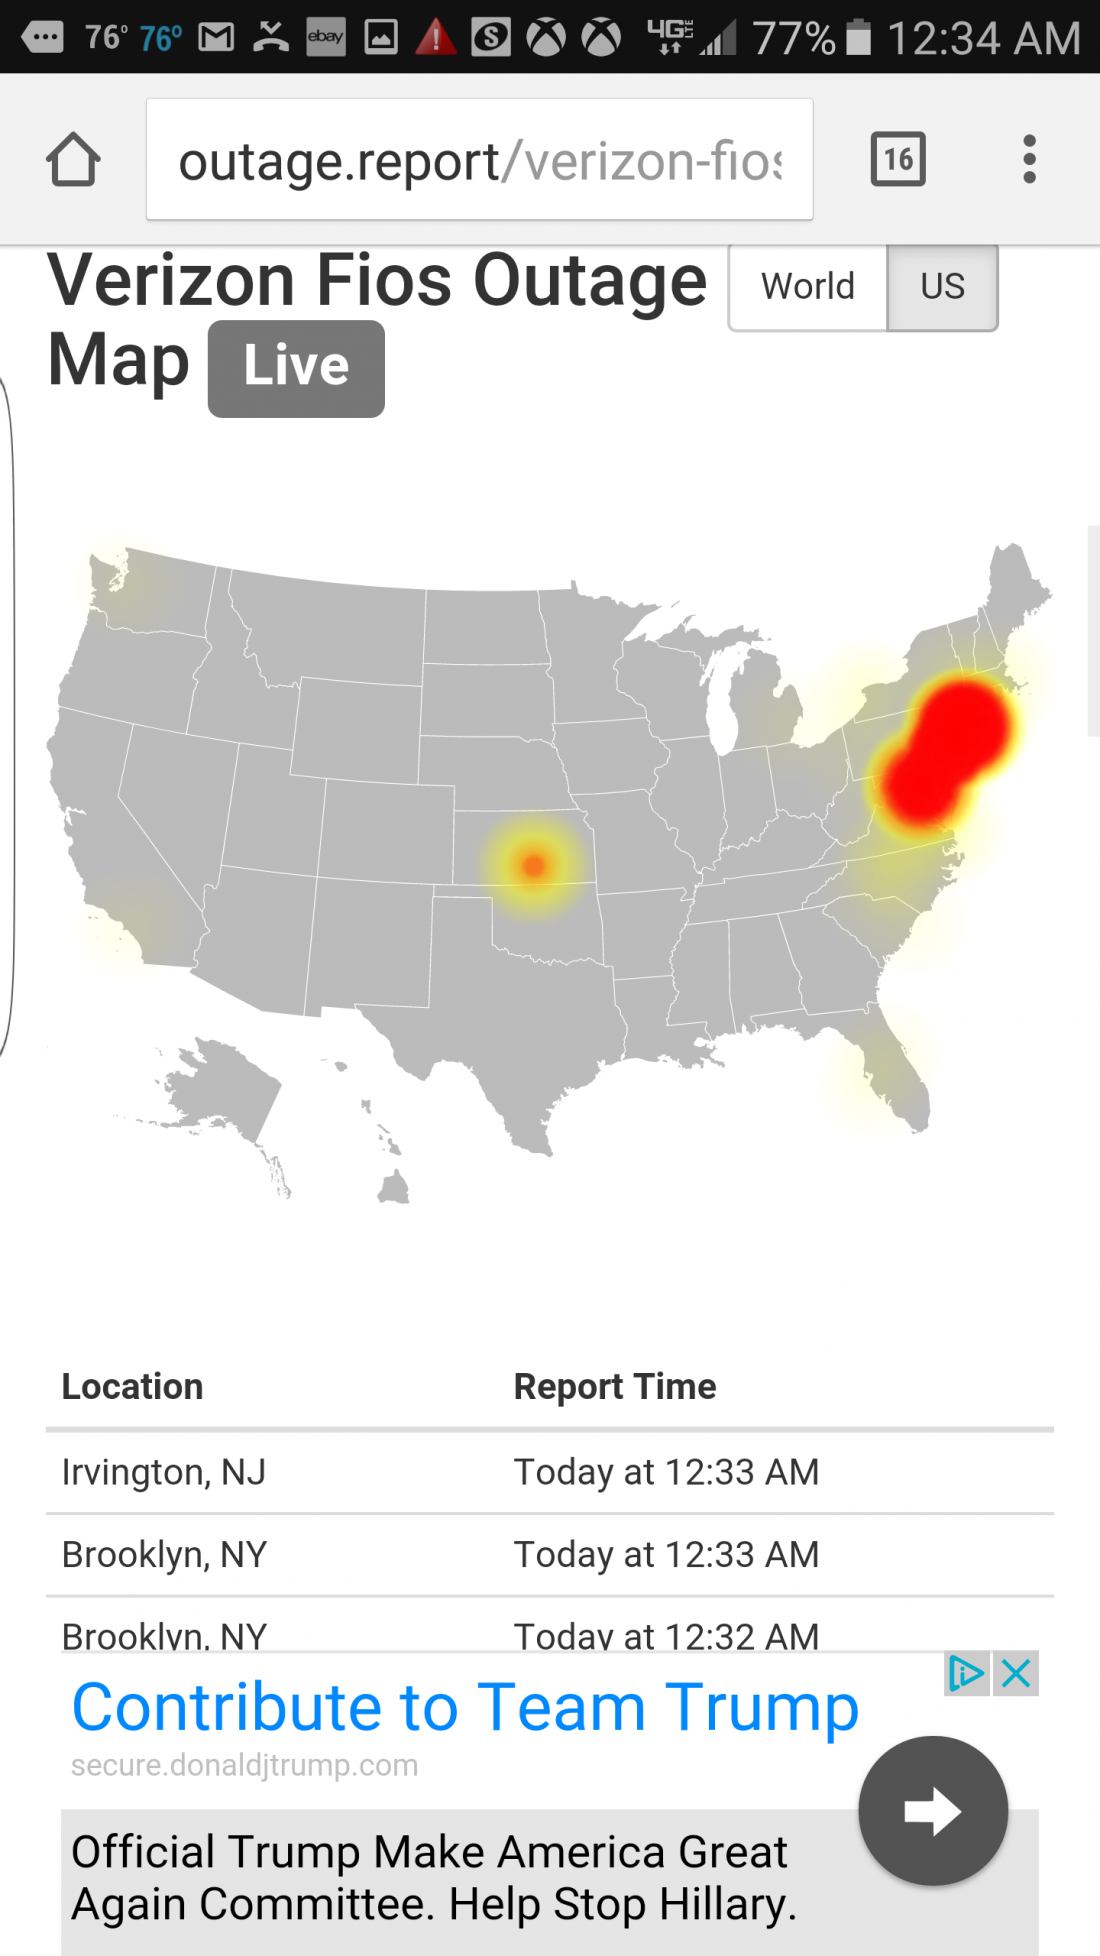 FYI fios outage - The Town Tavern - SurfTalk Fios Outage Map on nokia map, at&t map, microsoft map, network map, suddenlink map, netgear map, google map, mpls map, uverse map, new york area code map, centurylink map, maryland utility service area map, mobile map, dsl map, cst map, oracle map, time warner map, cisco map, windstream map, apple map,